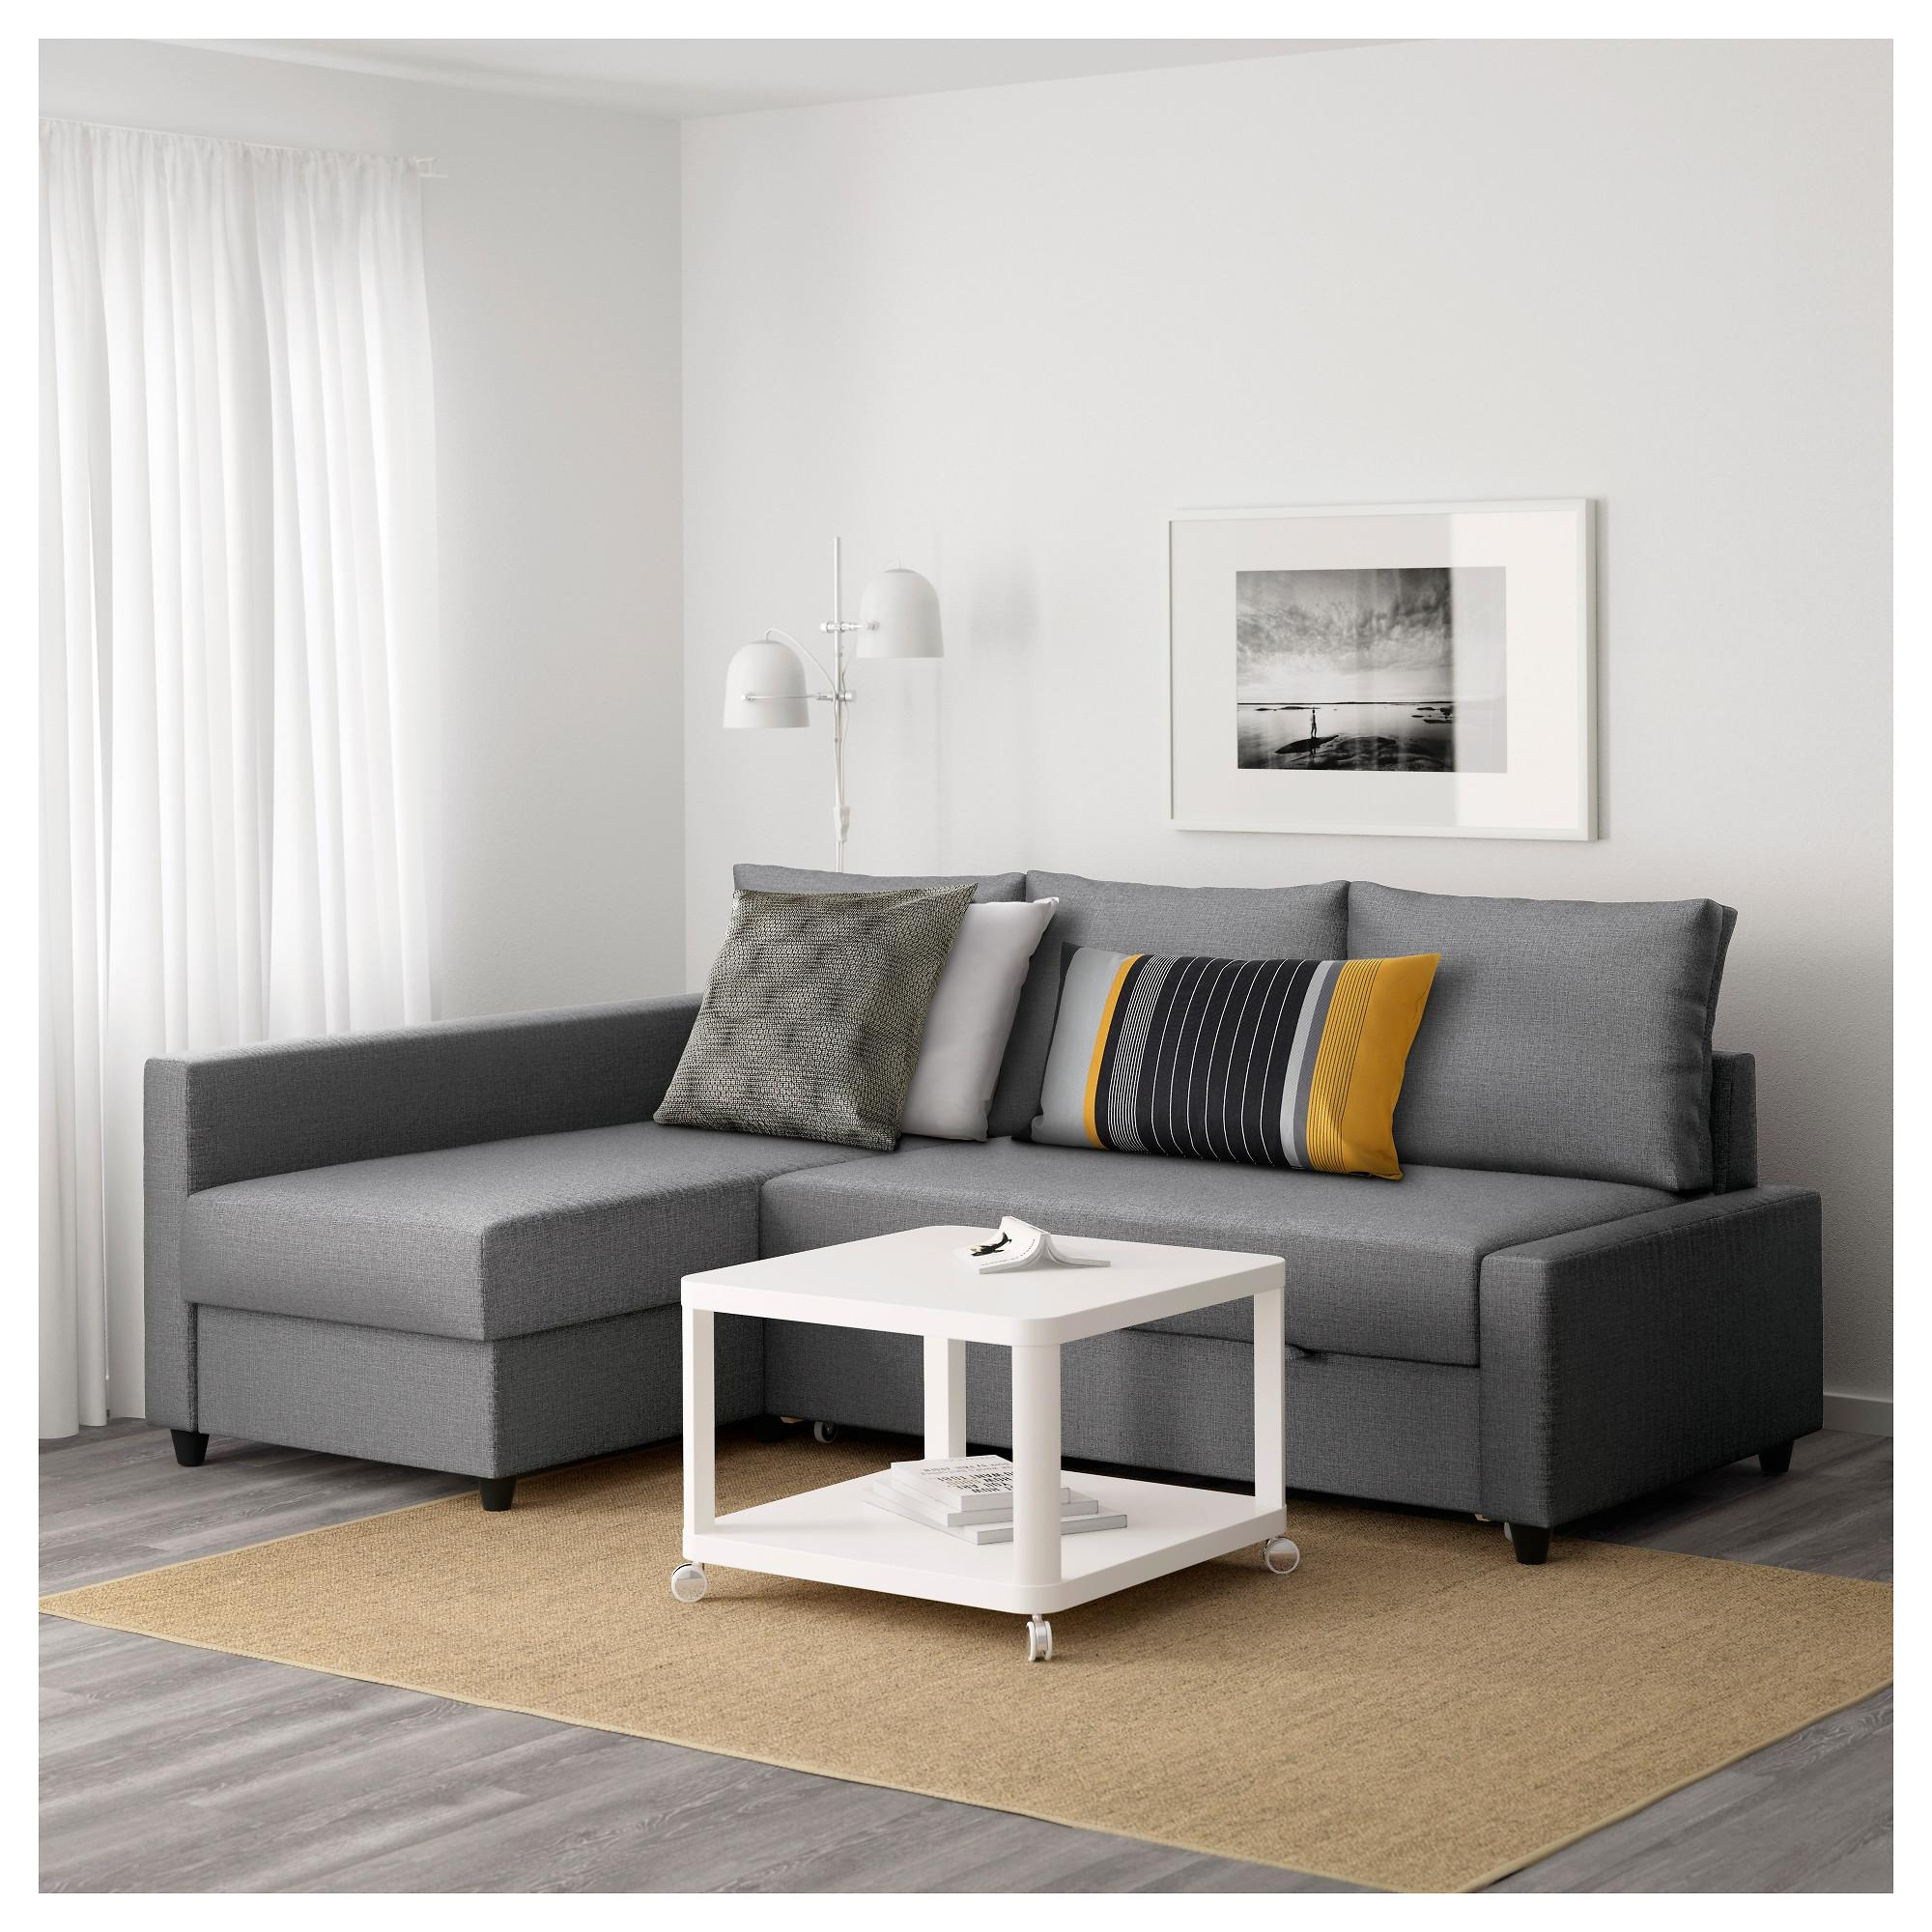 Friheten Corner Sofa Bed With Storage Skiftebo Dark Grey – Ikea With Ikea Storage Sofa Bed (Image 7 of 20)